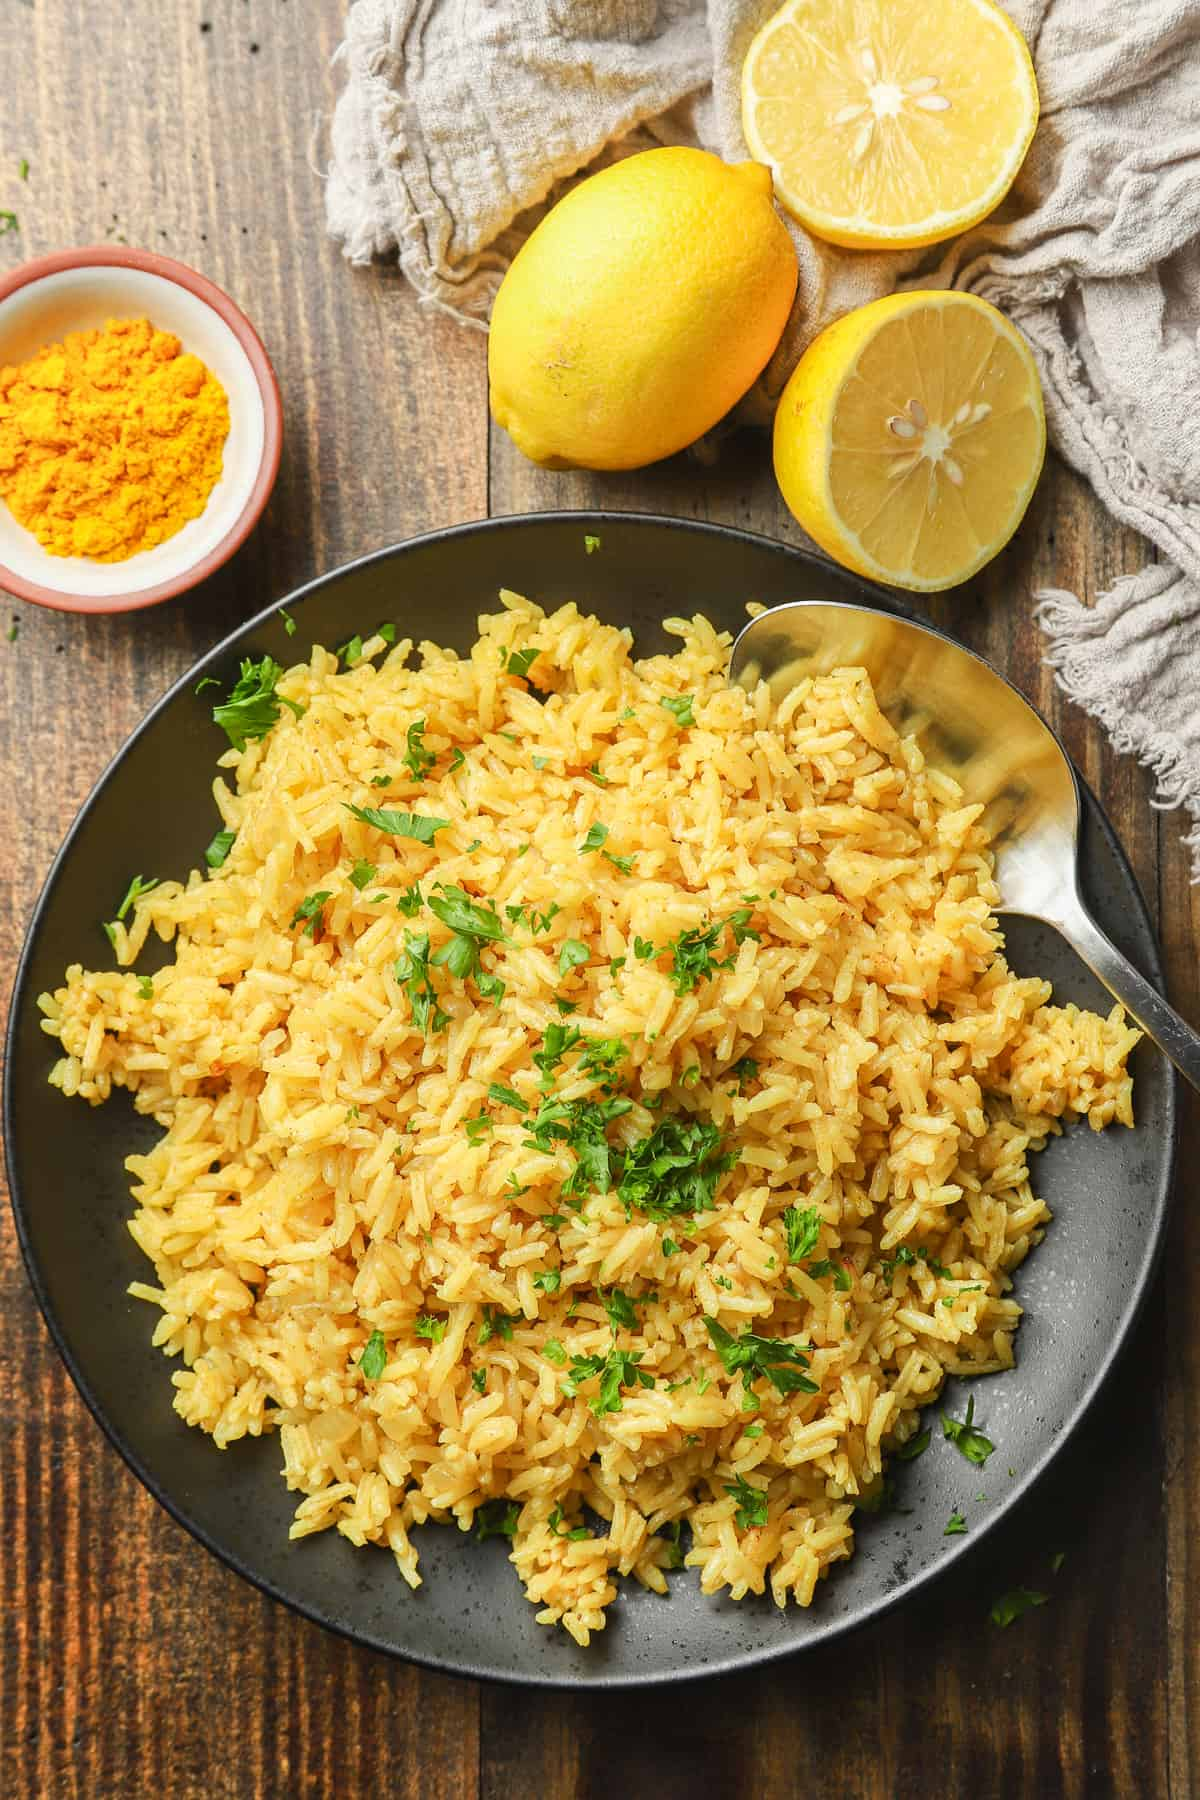 Wooden Table Set with a Plate of Turmeric Rice, Lemons, and Dish of Turmeric